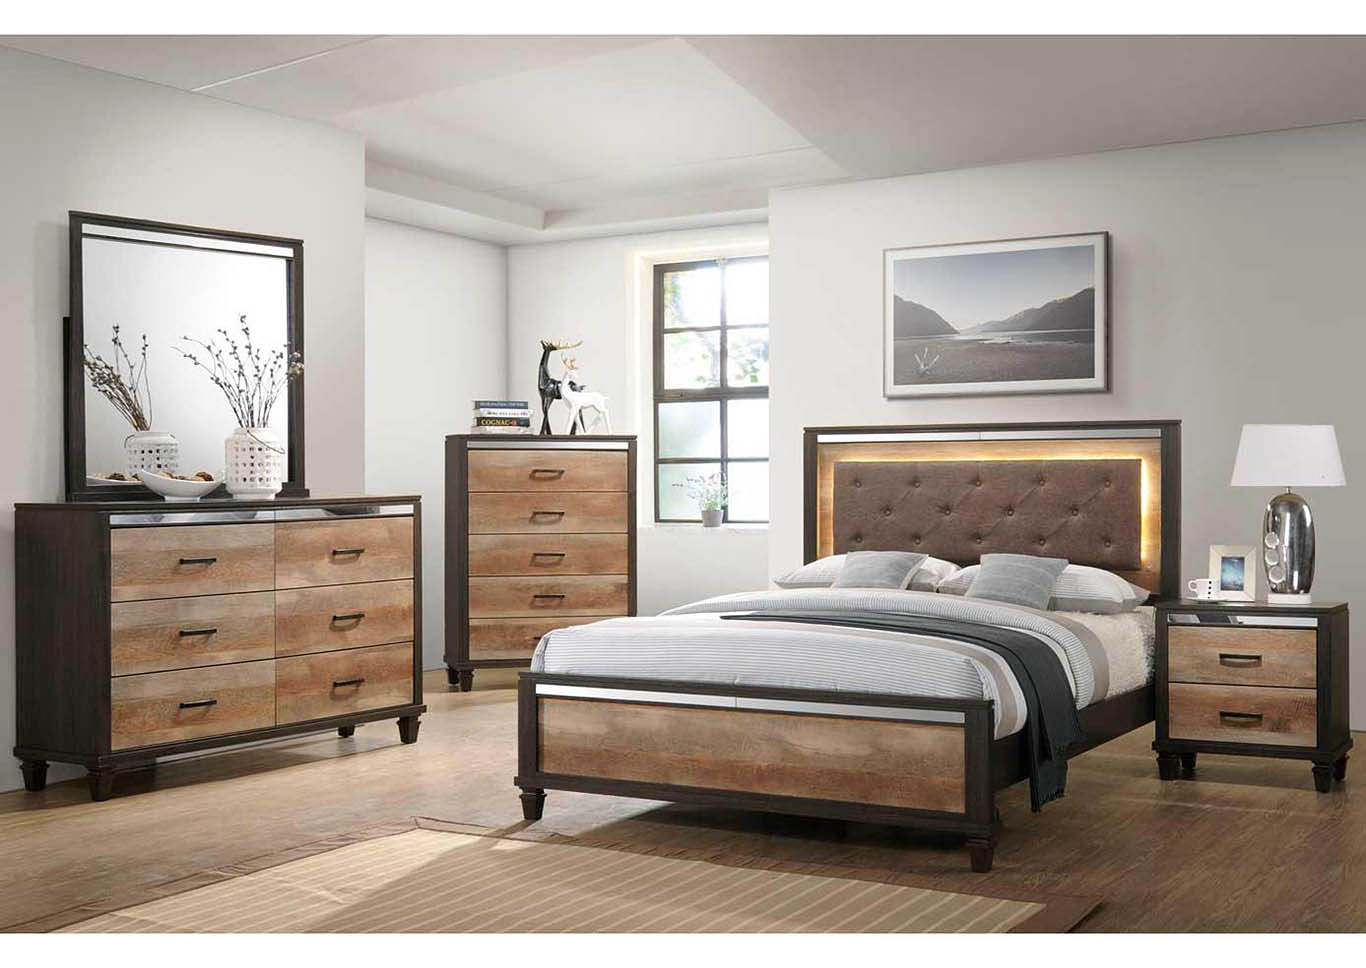 Trishelle Espresso Panel Queen 4 Piece Bedroom Set W/ Nightstand, Dresser & Mirror,Global Trading